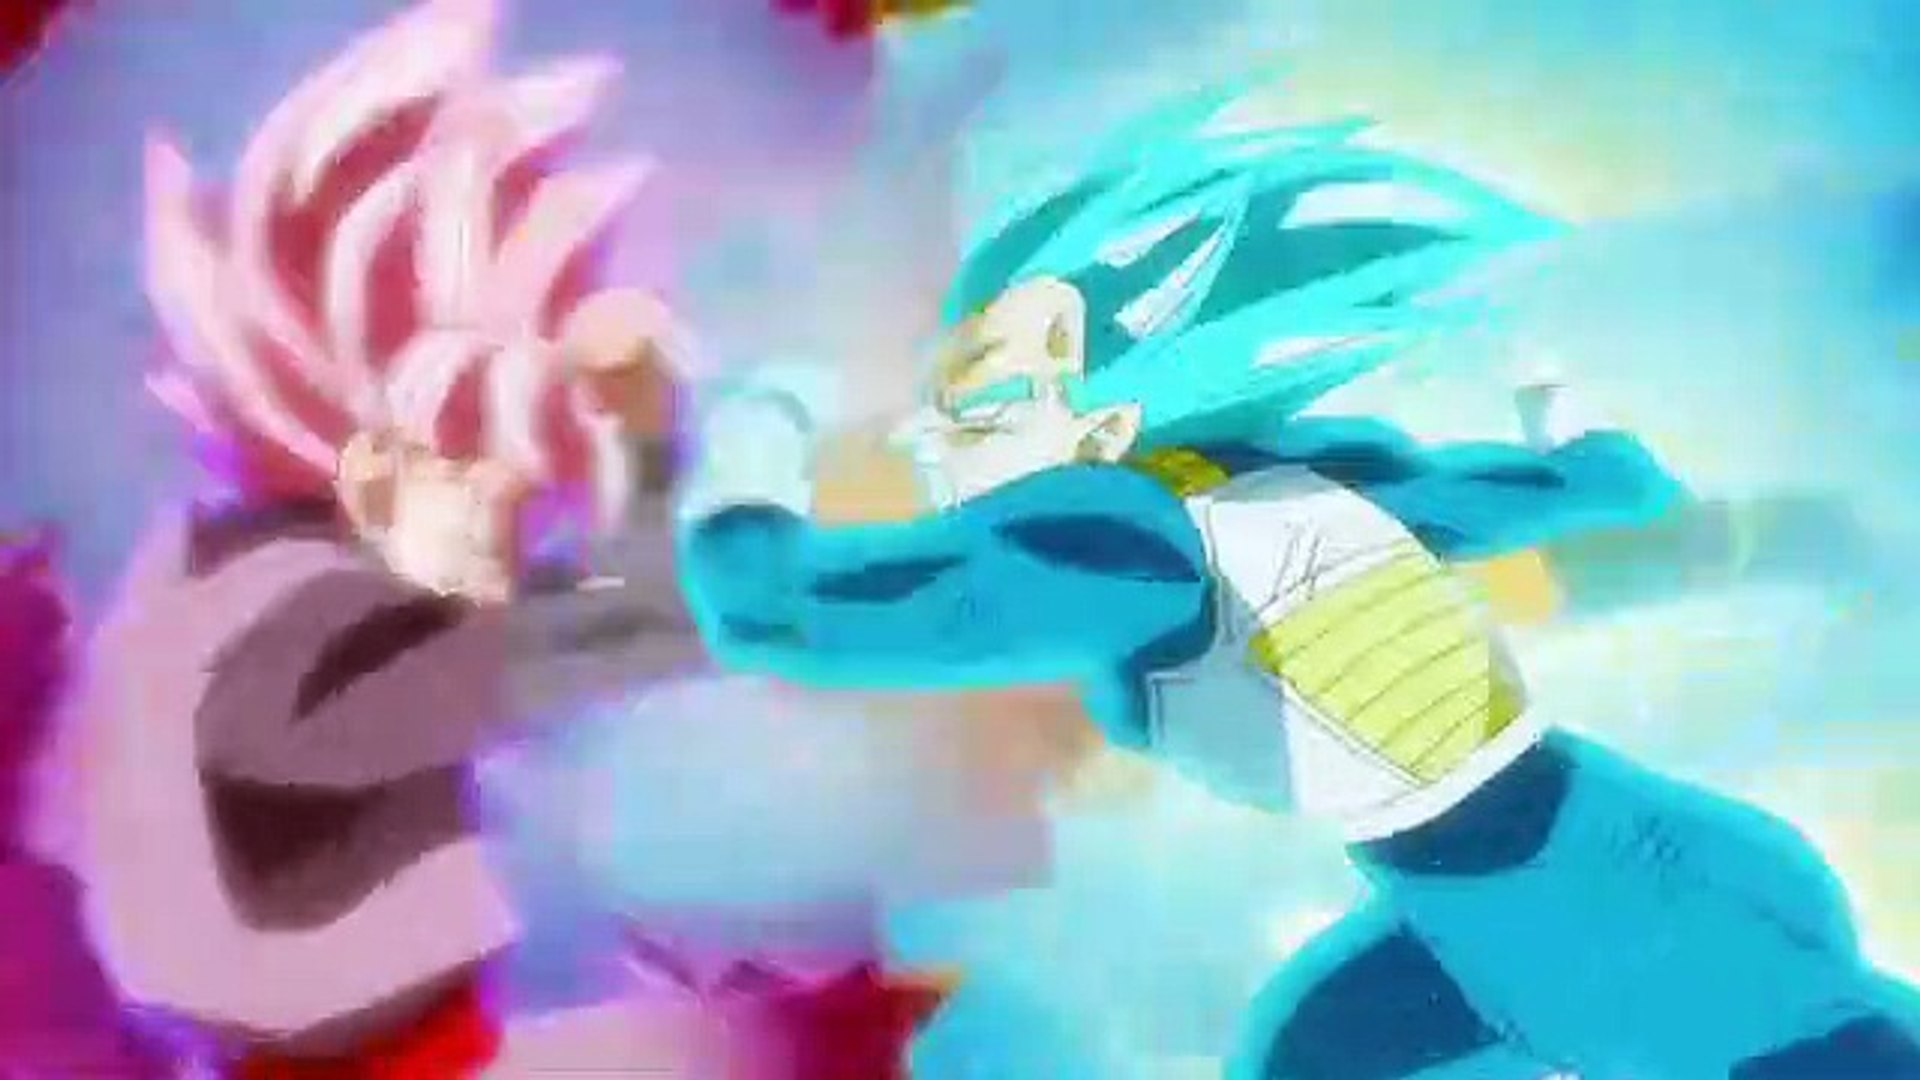 Dragon Ball Z Goku Black Vs Vegeta 1920x1080 Wallpaper Teahub Io